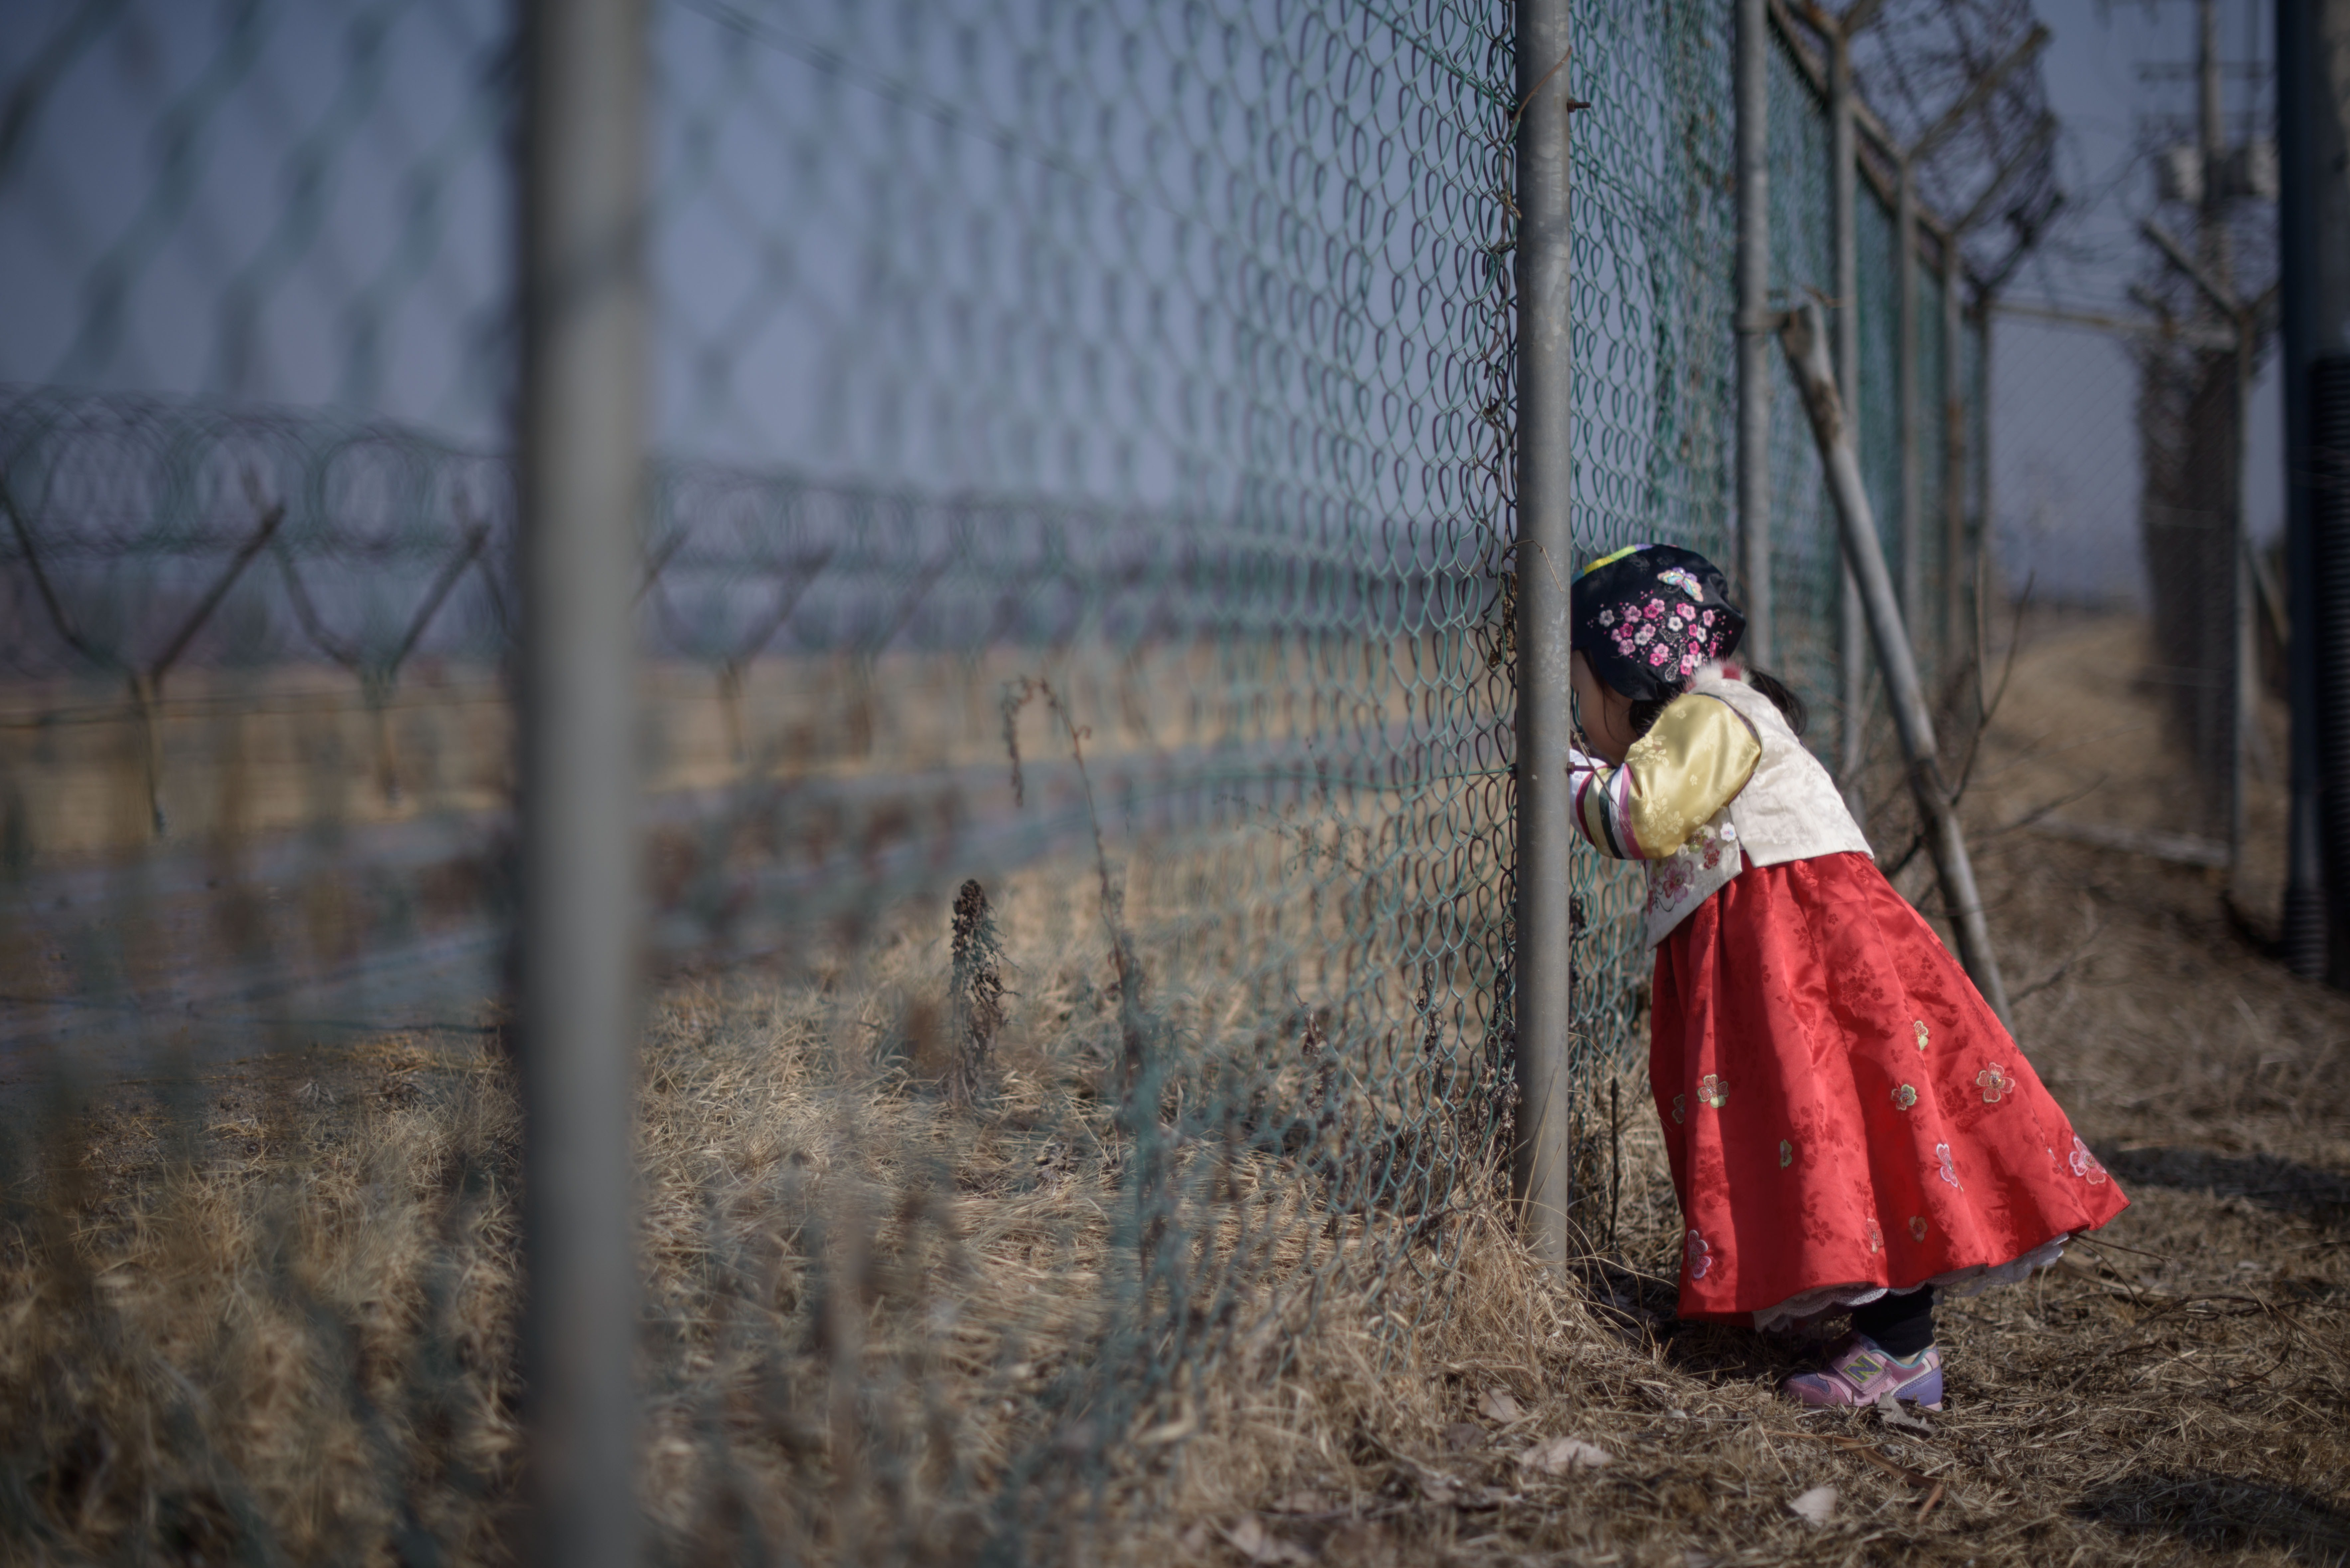 A girl wearing a traditional hanbok dress stands at a military fence facing towards North Korea at Imjingak Park, south of the Military Demarcation Line and Demilitarized Zone (DMZ) separating North and South Korea, on Feb. 19, 2015. (Ed Jones/AFP/Getty Images)